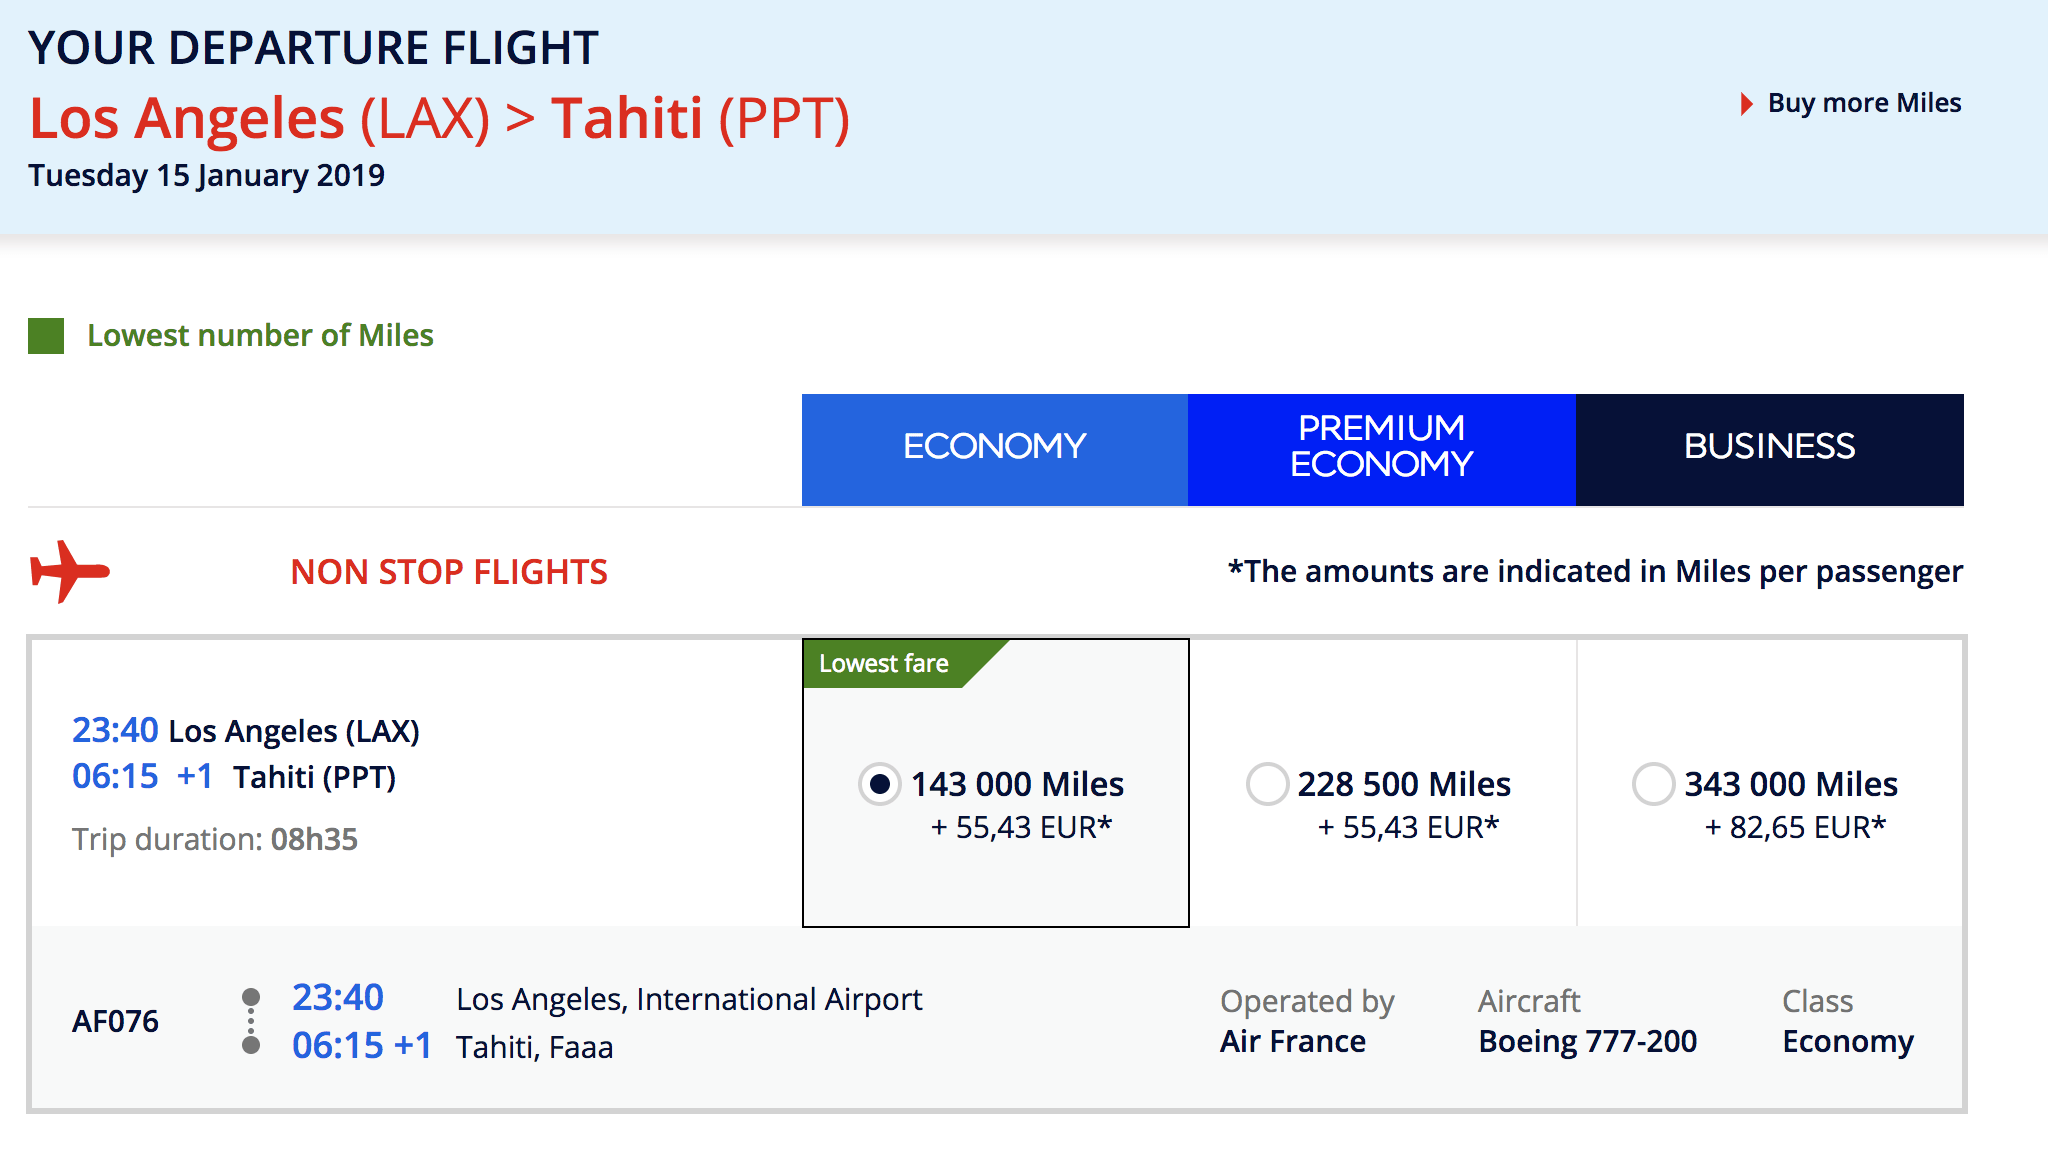 The Best Ways to Get to Tahiti Using Points And Miles